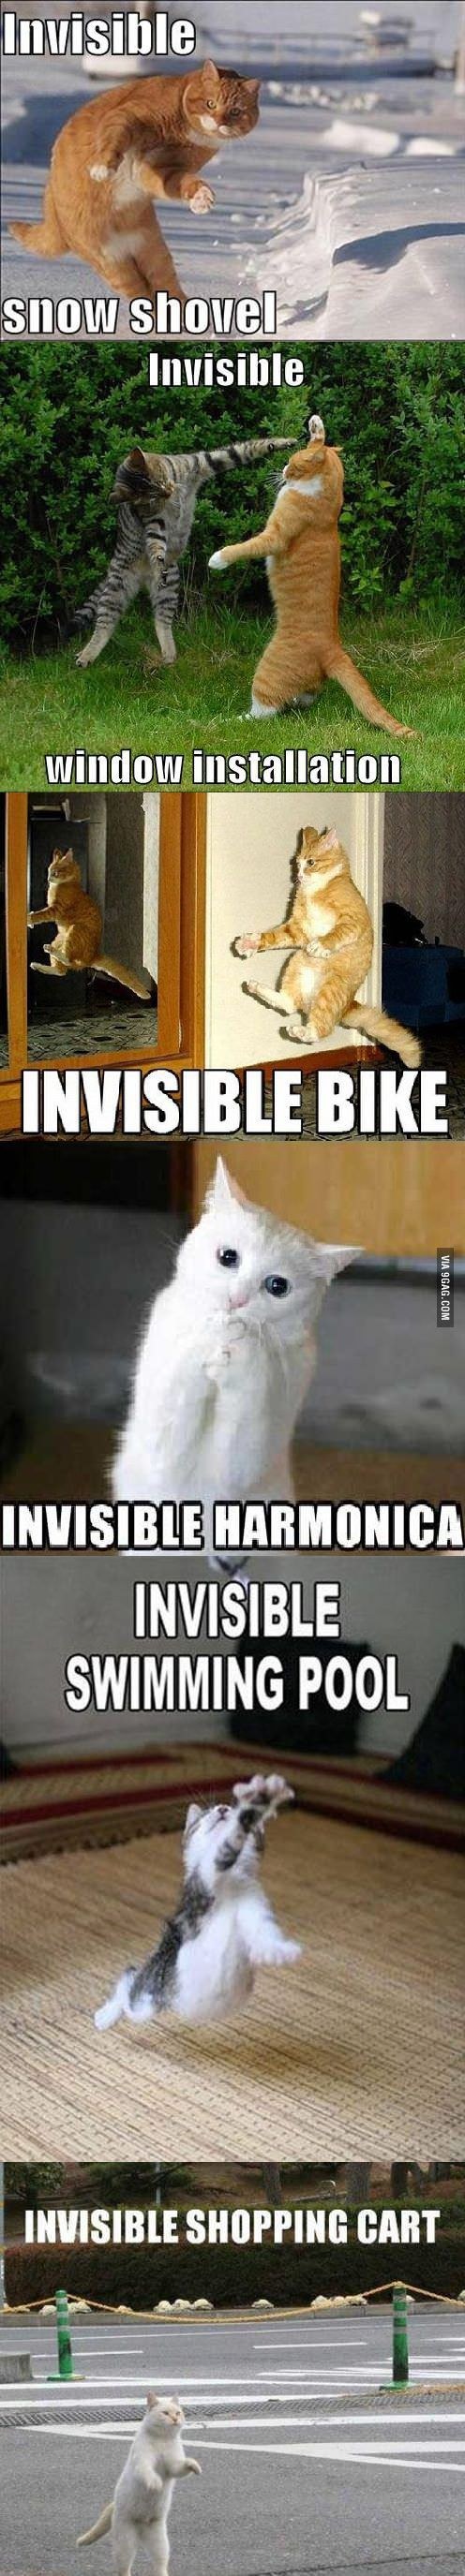 Invisible stuff and cats